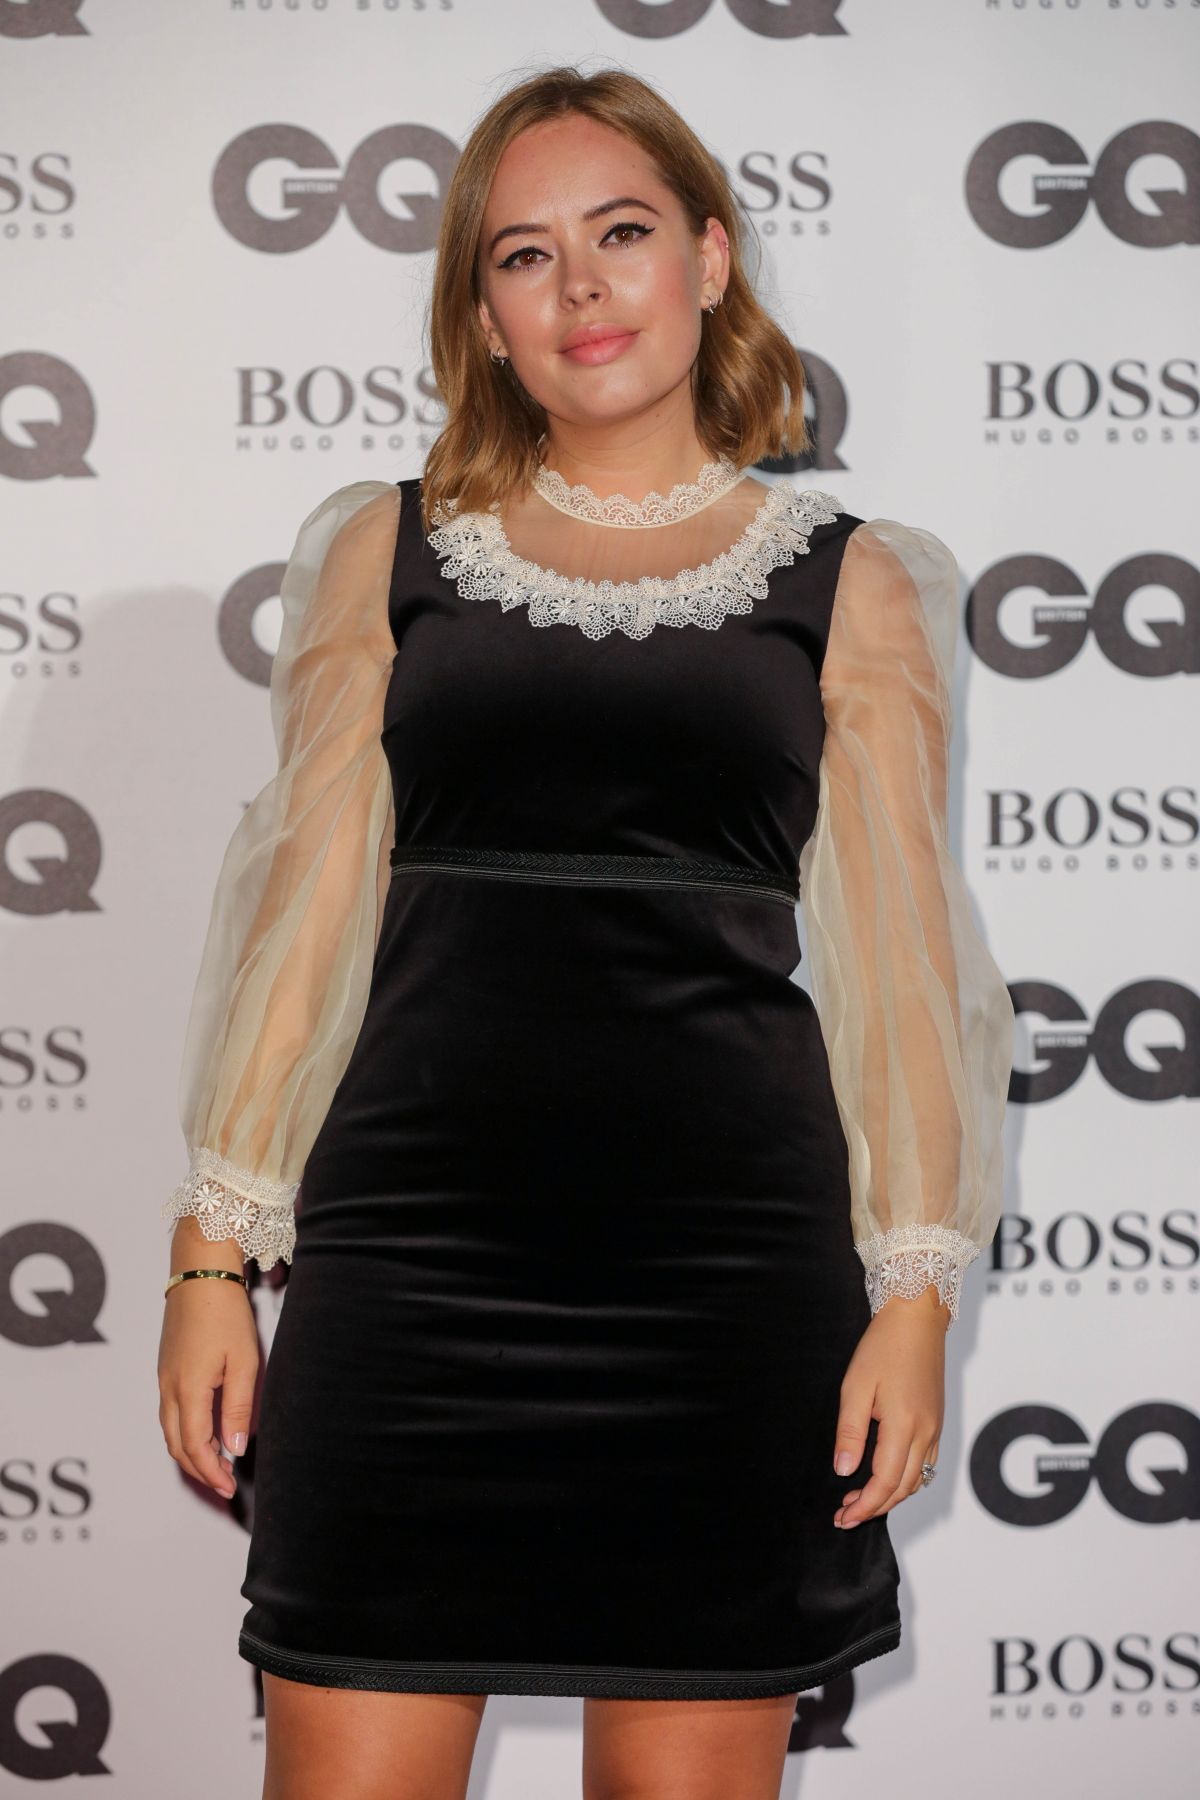 TANYA BURR at GQ Men of the Year Awards 2017 in London 09/05/2017